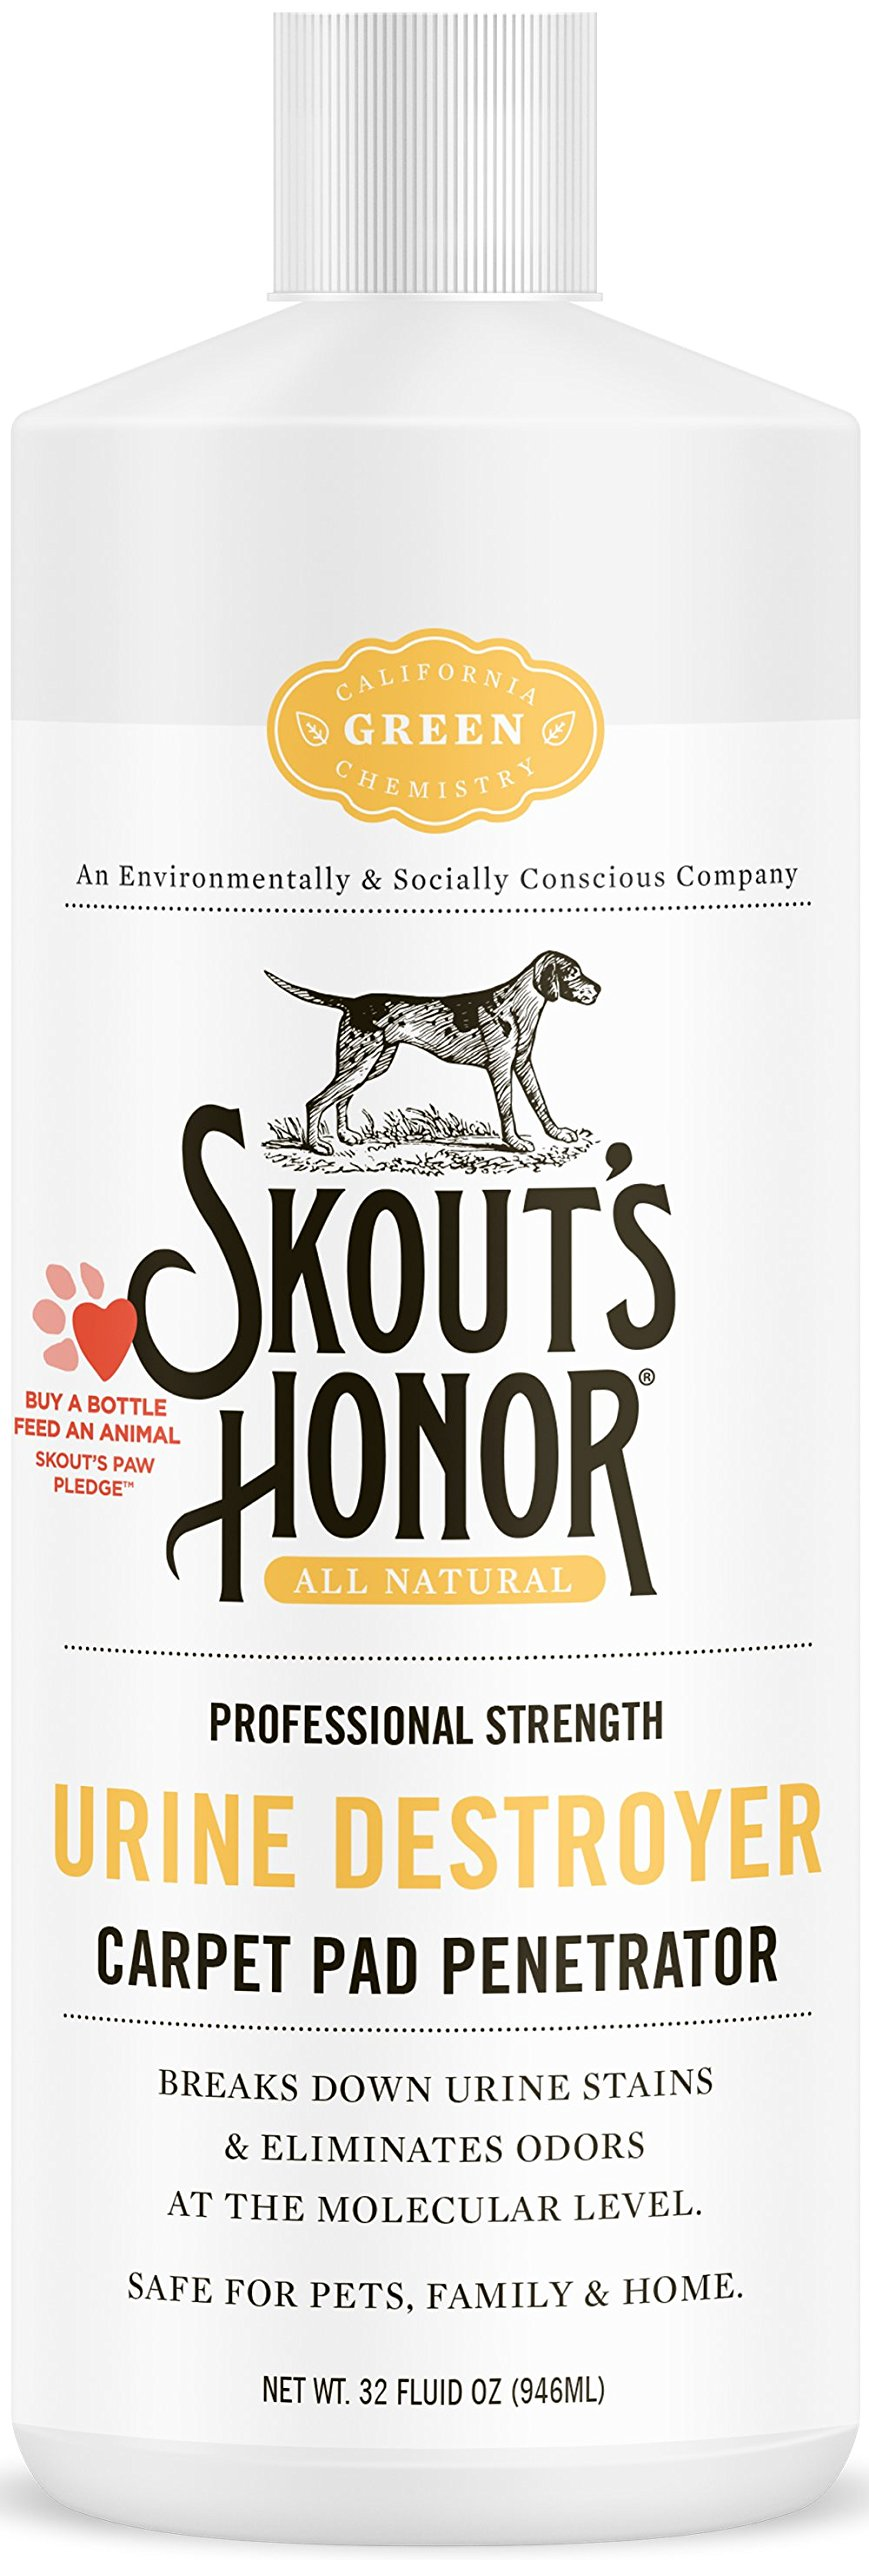 SKOUT'S HONOR Pet Stain Remover Professional Strength Urine Destroyer Carpet Pad Penetrator - Non-Toxic, Biodegradable, and Environmentally Safe - Odor Eliminating Technology - 32oz Bottle